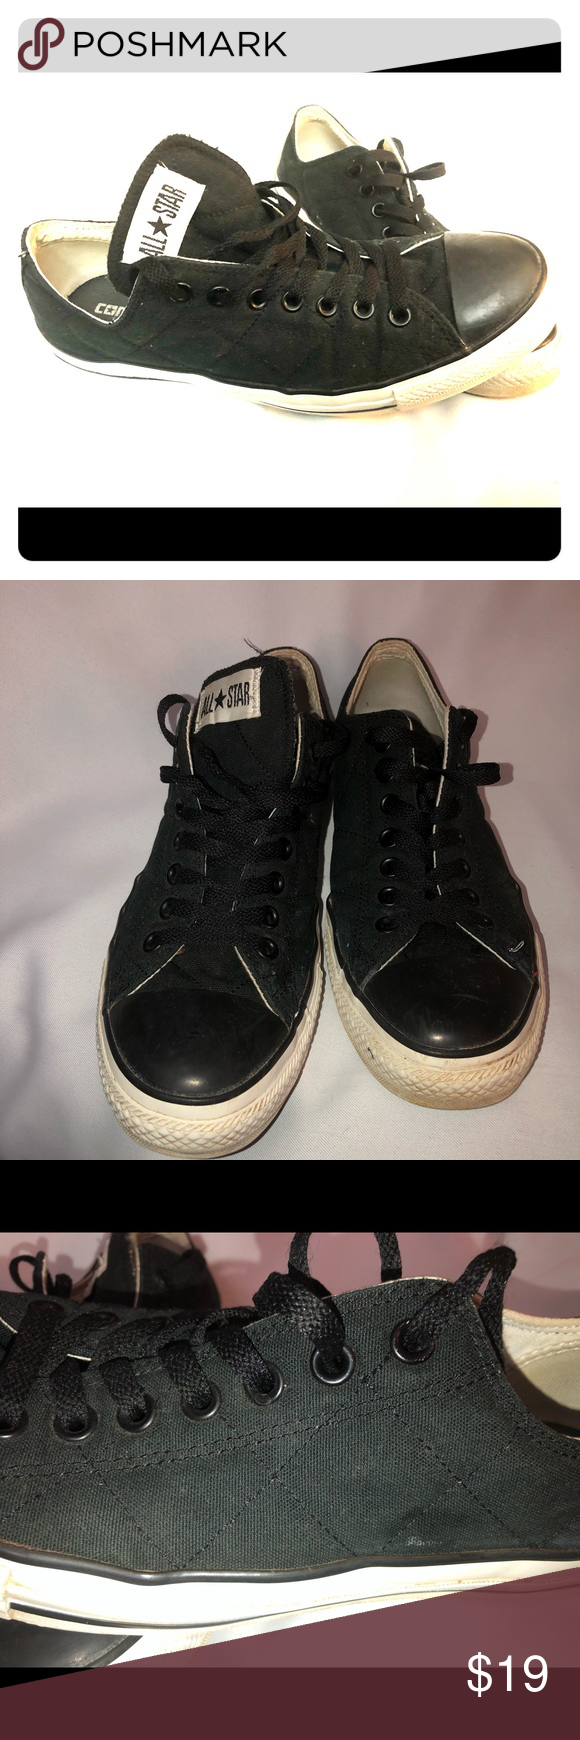 de2b3e6fc033 Rare unique converse all star padded textile chuck A very rare pair of size  10 men s